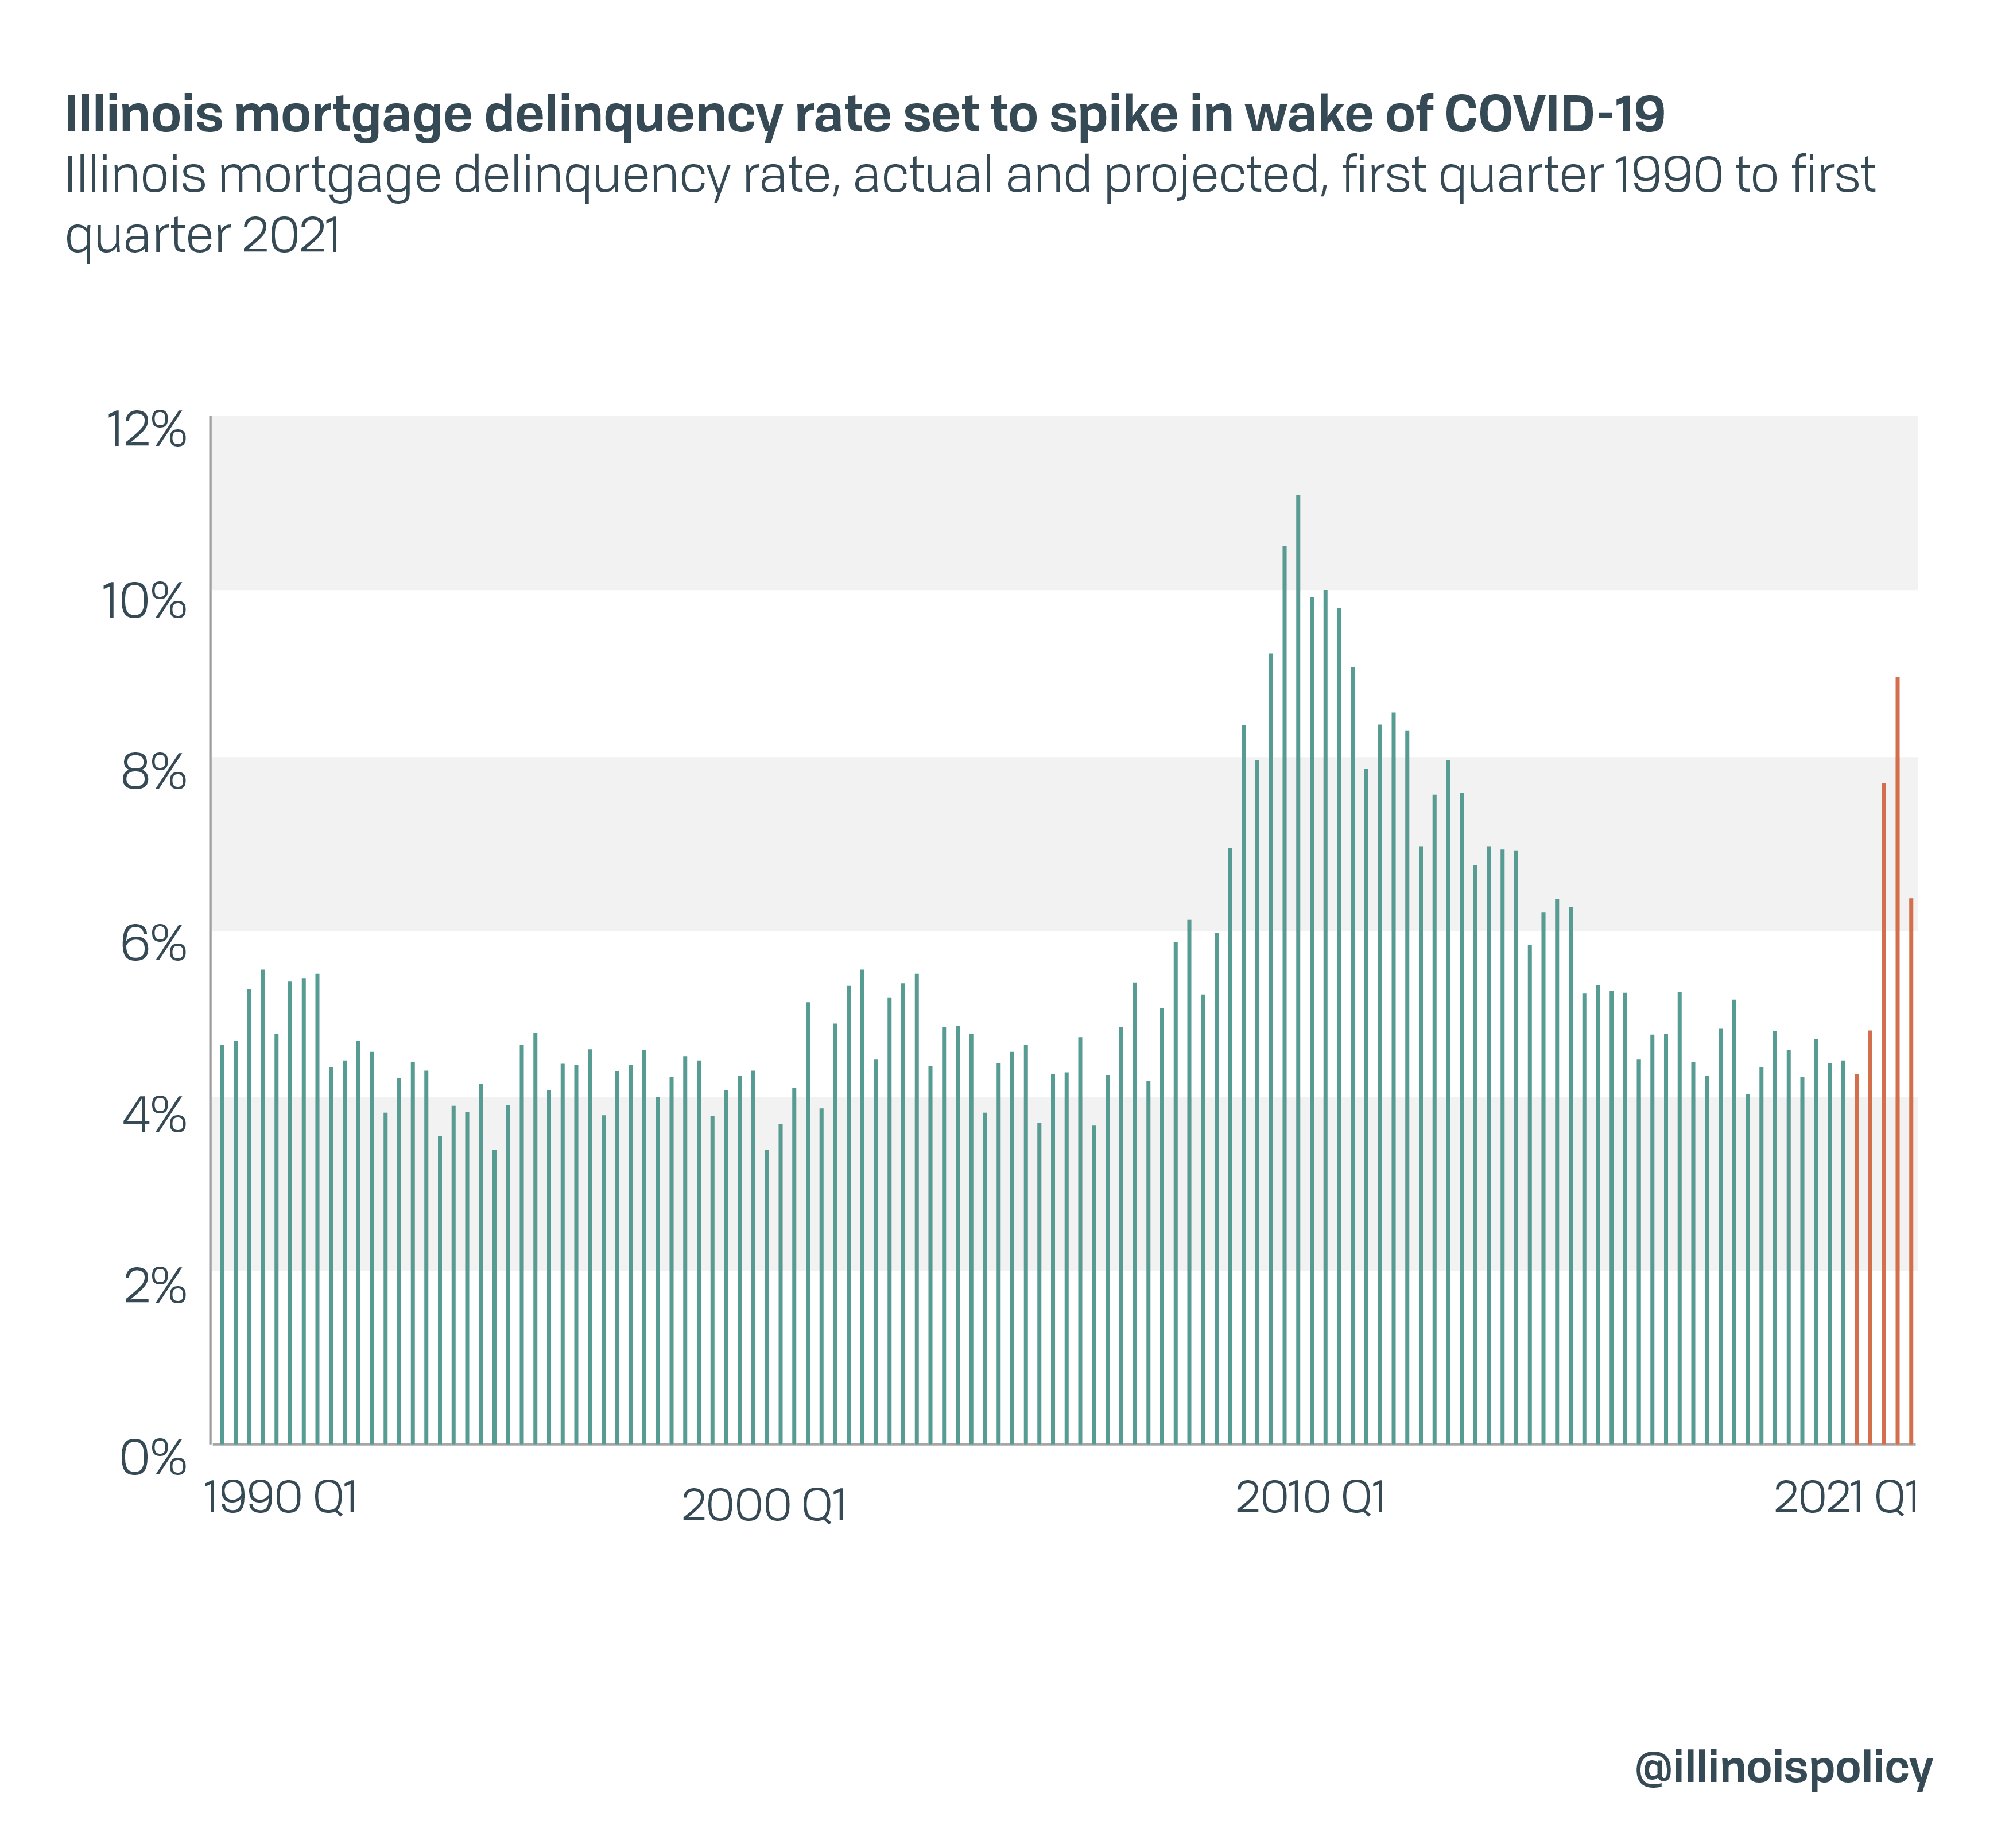 Illinois mortgage delinquency rate set to spike in wake of COVID-19